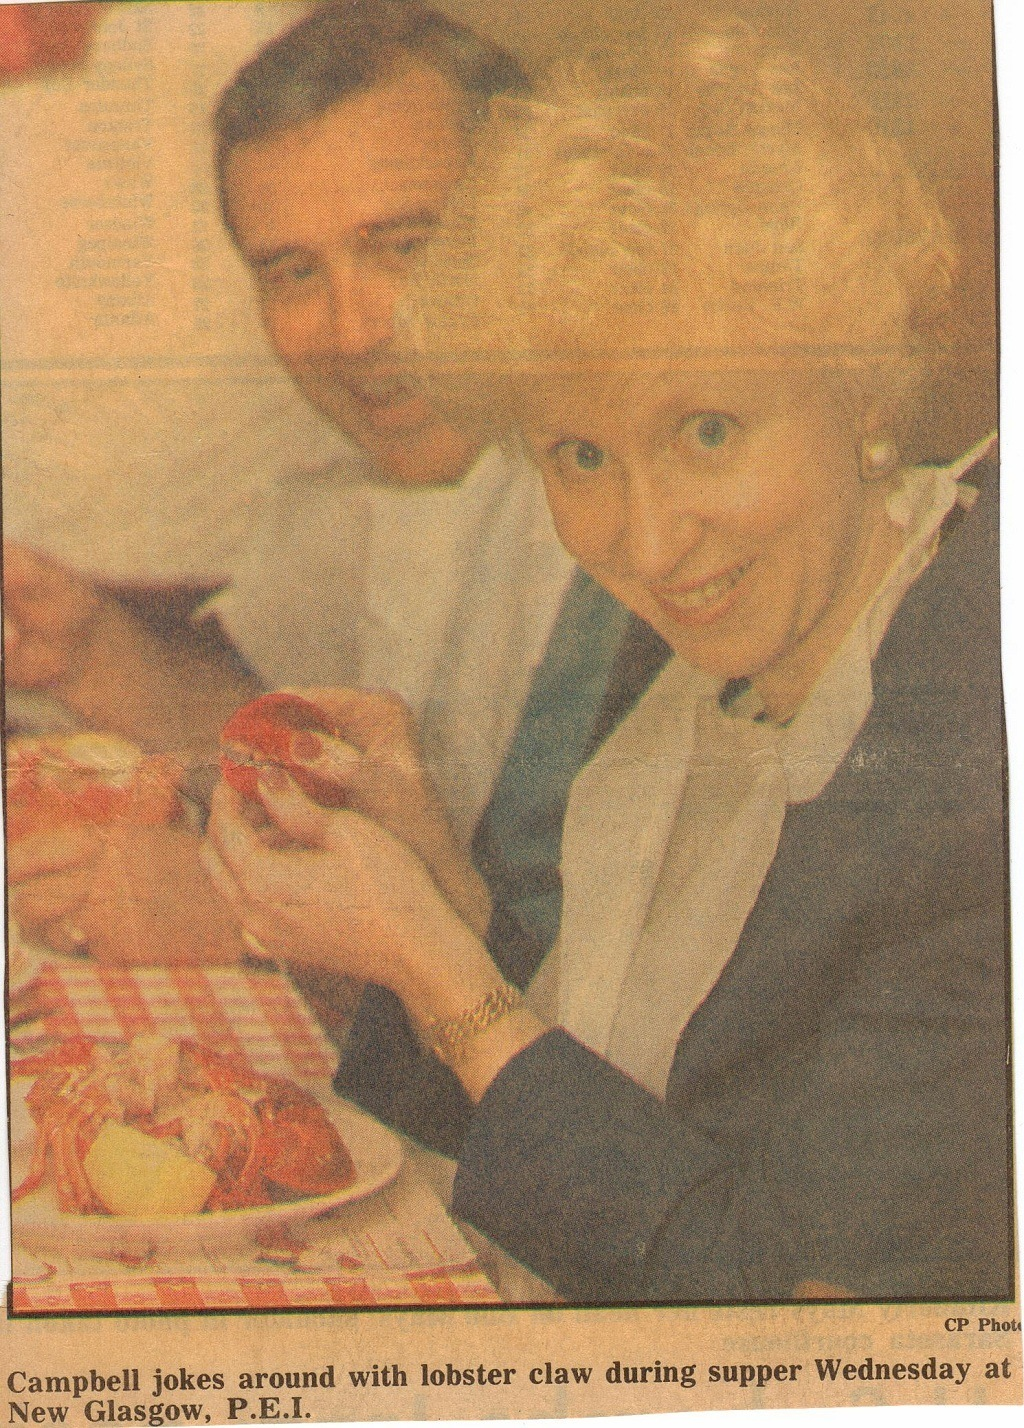 kim campbell as the first female prime minister of canada The fact that canada did it first back in 1993 we tend to forget about her, but kim  campbell is actually pretty awesome she's been out  march 21, 2017 tags:  canada kim campbell prime minister twitter video your morning.